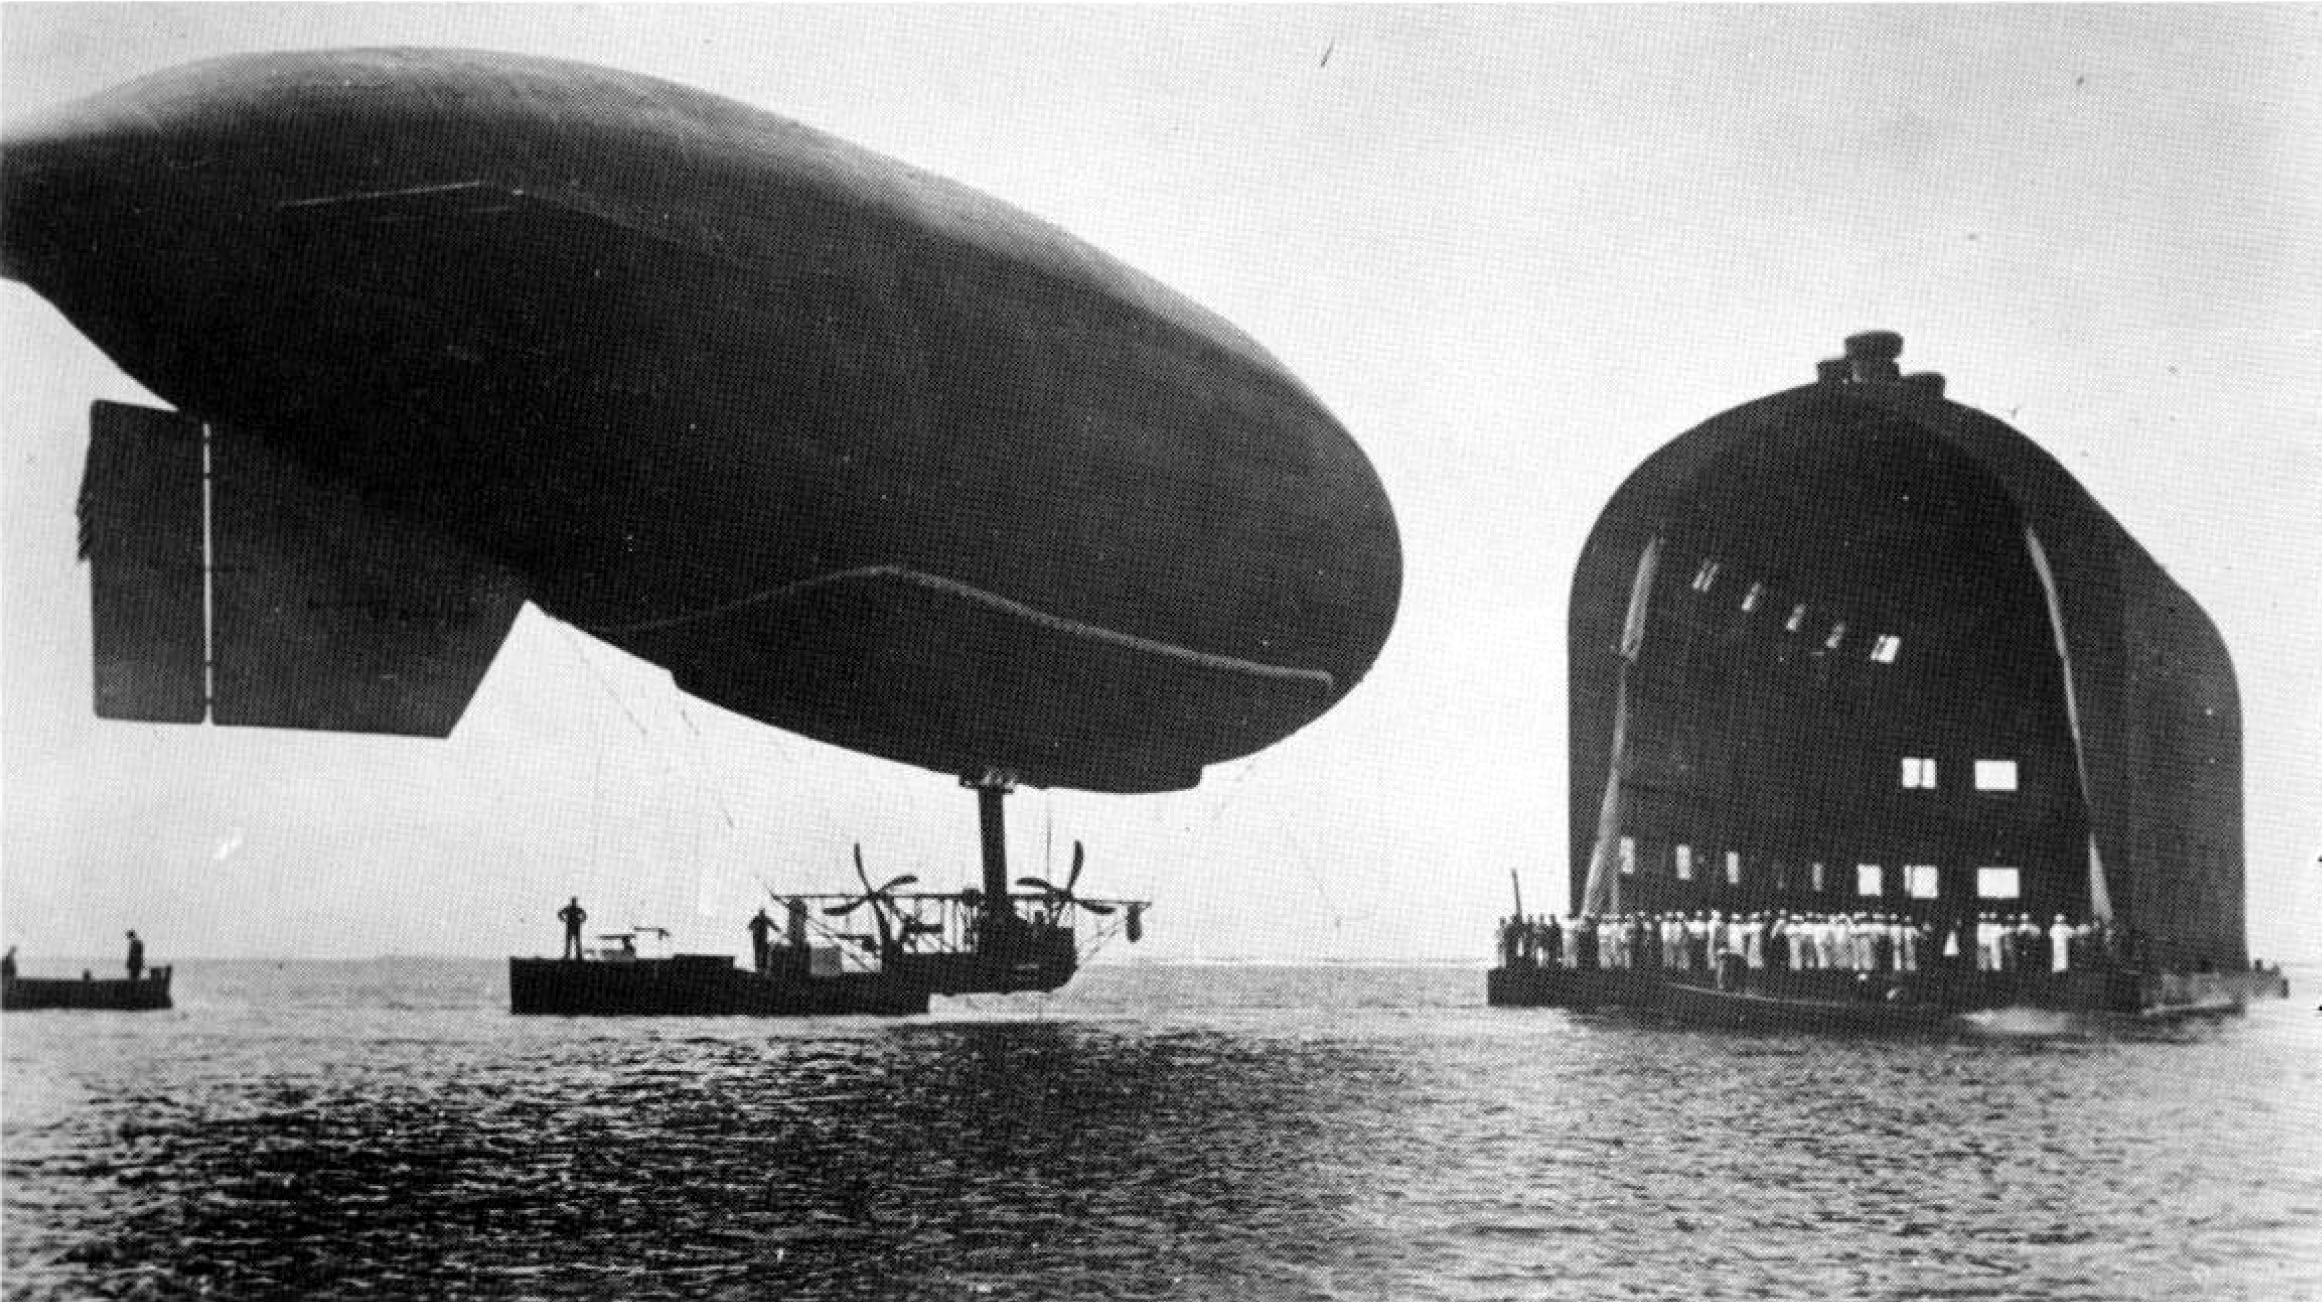 The DN-1 dirigible being guided to its floating hangar in Pensacola, Florida.